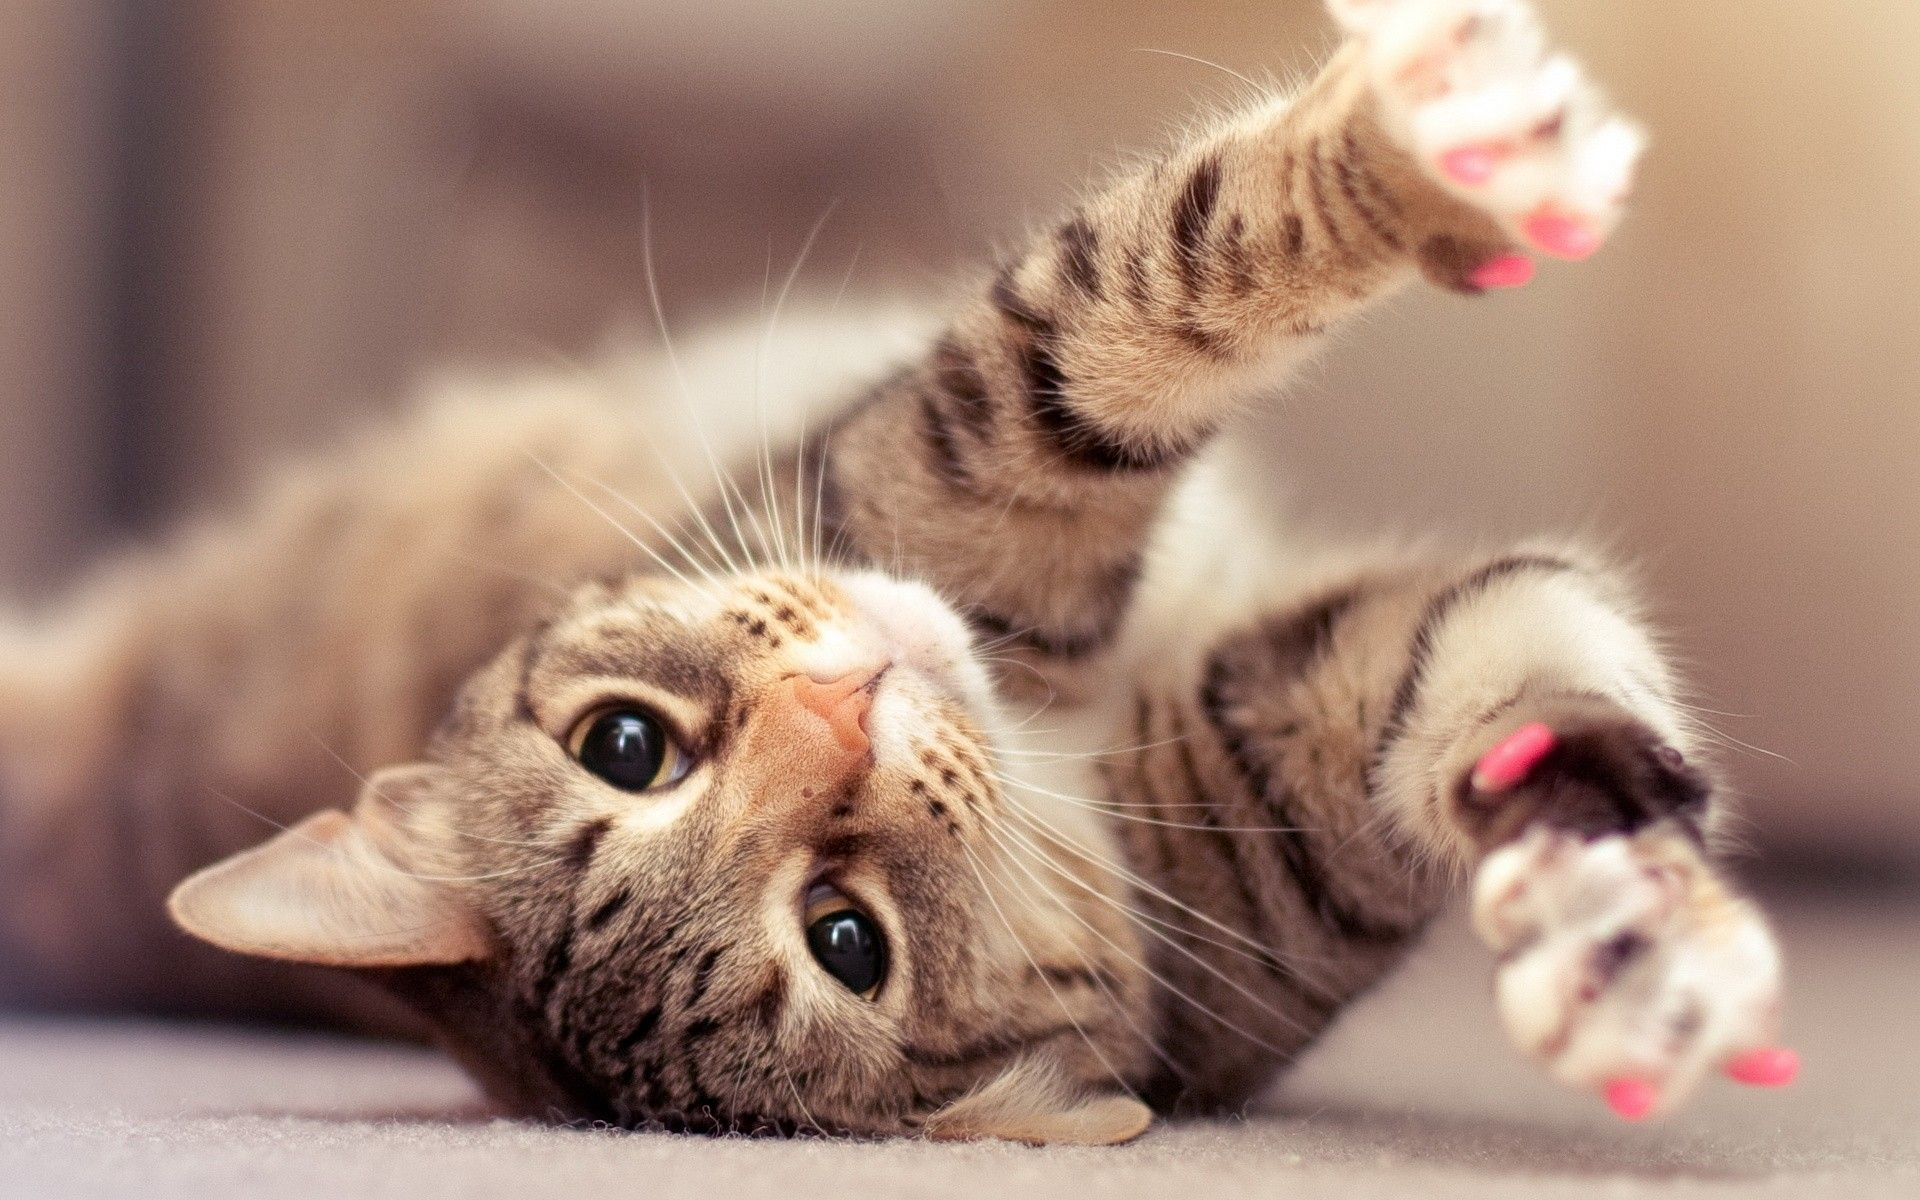 Awesome Cute Lazy Cat Background Picture Kittens Cutest Cat Behavior Cat Illnesses